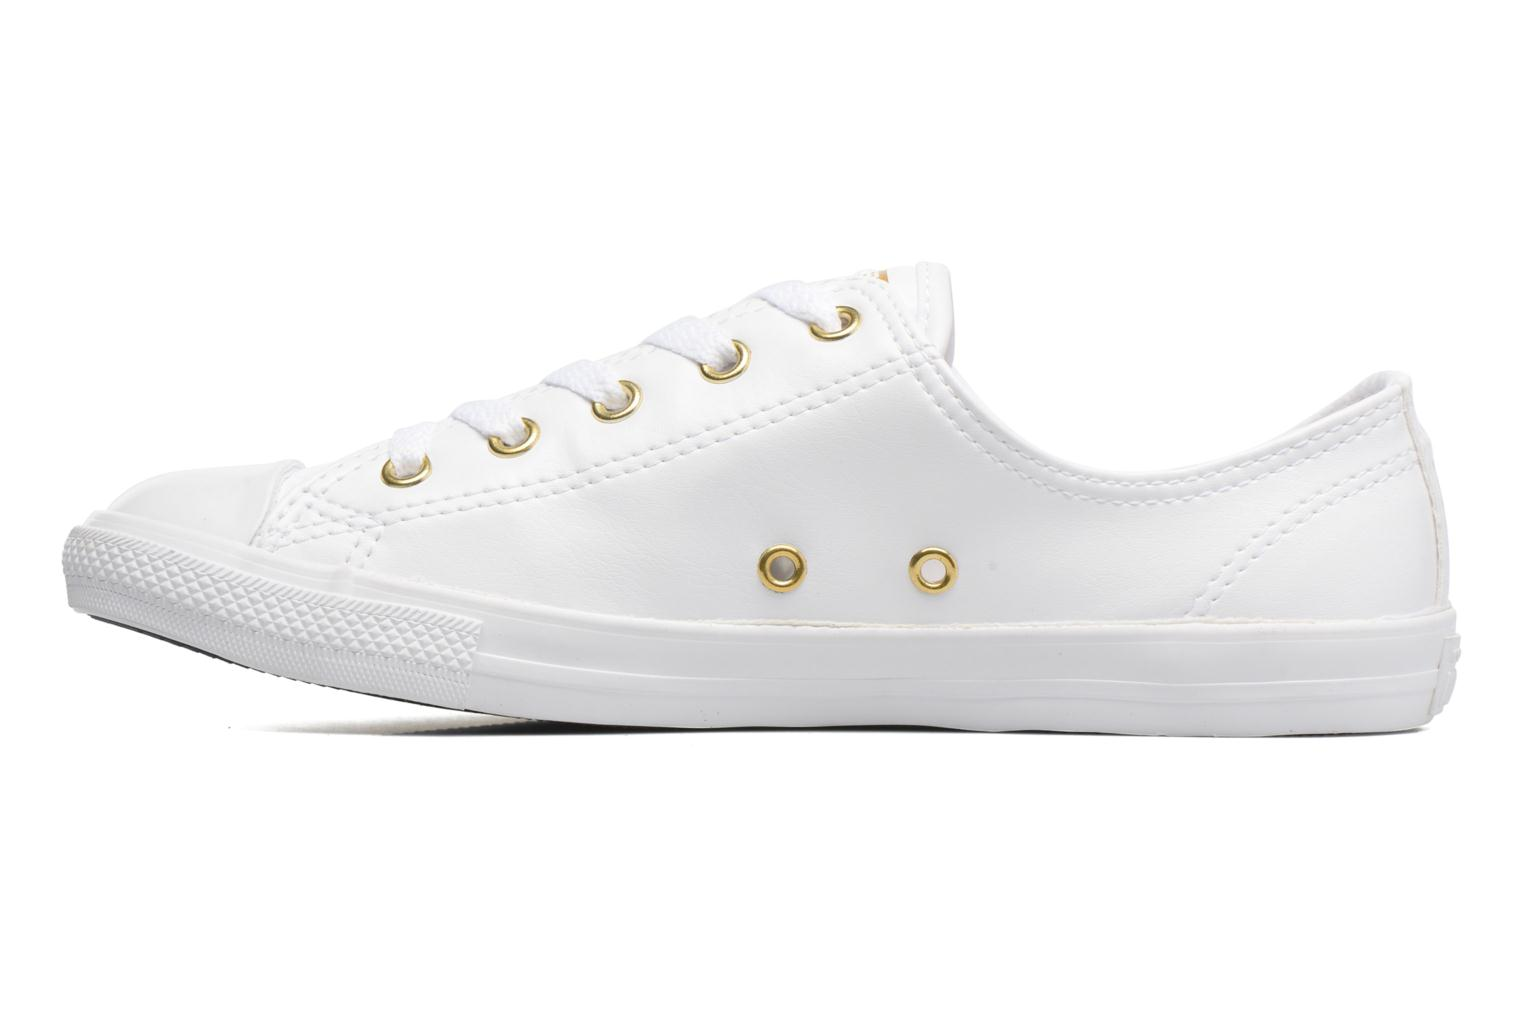 Gold Taylor White Star SL All Converse Ox Chuck Dainty Craft